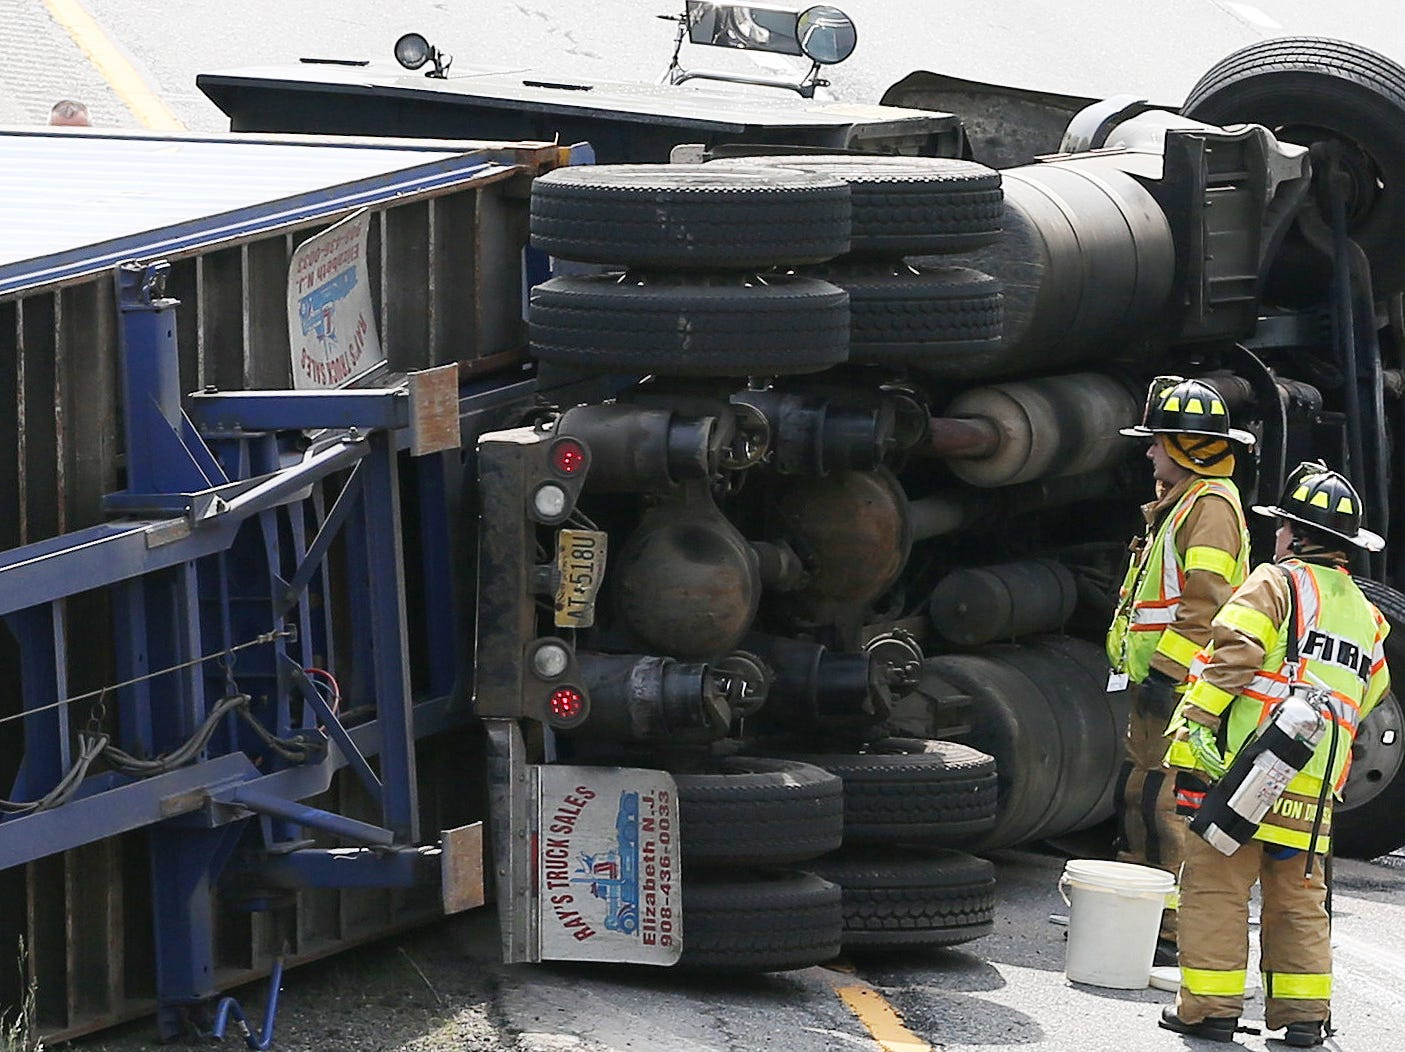 Brewster firefighters check for leaking fuel at the scene of  tractor trailer rollover on eastbound I-84 at the intersection with I-684 in the town of Southeast June 8, 2018. The injured truck driver was transported to Danbury Hospital following the crash.